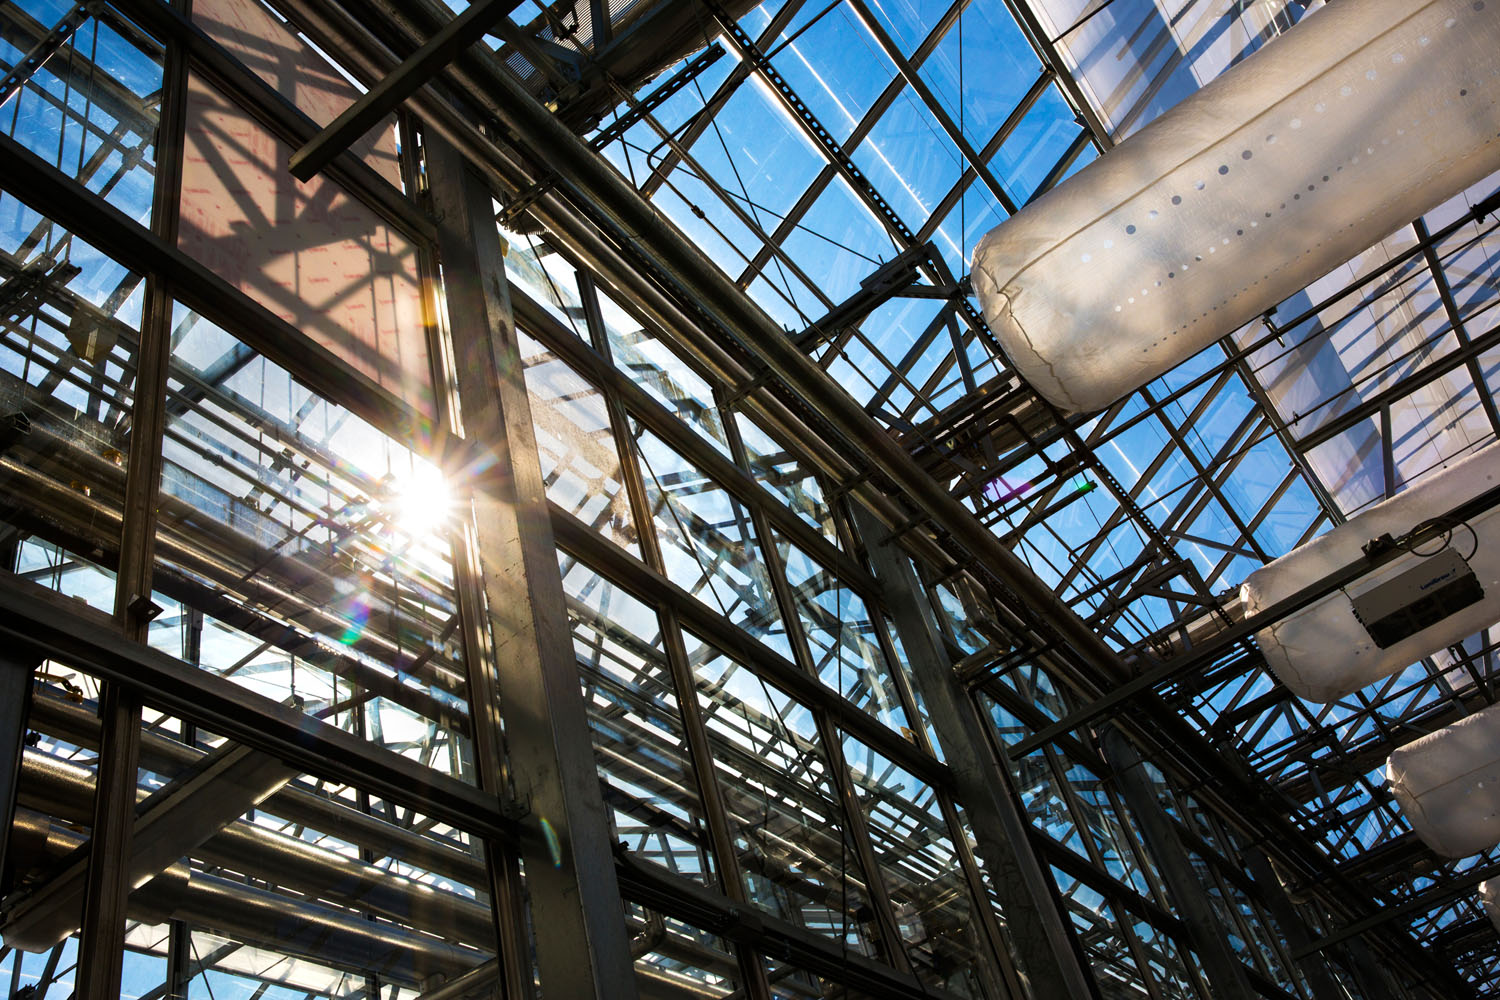 Sun shines into Greenhouse Innovation Center